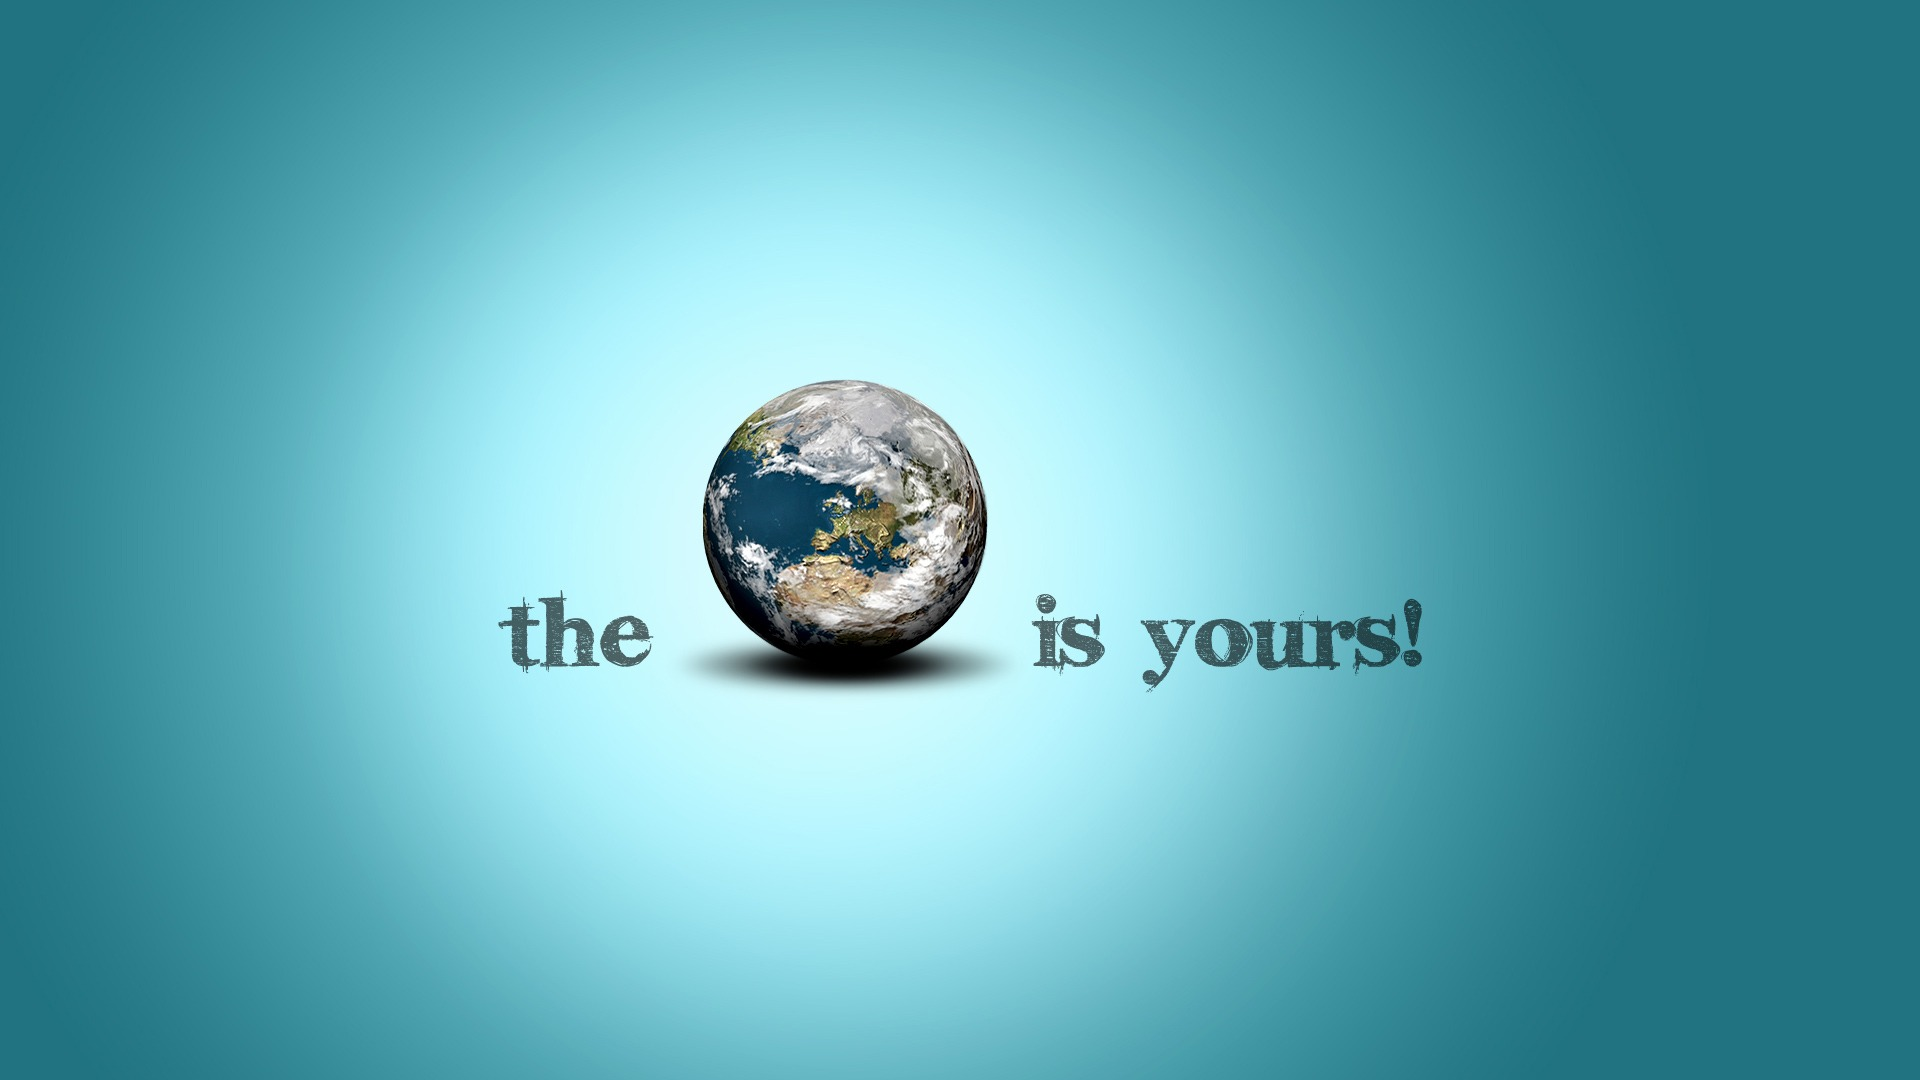 The World Is Yours Wallpaper Photo Manipulated Nature Wallpapers